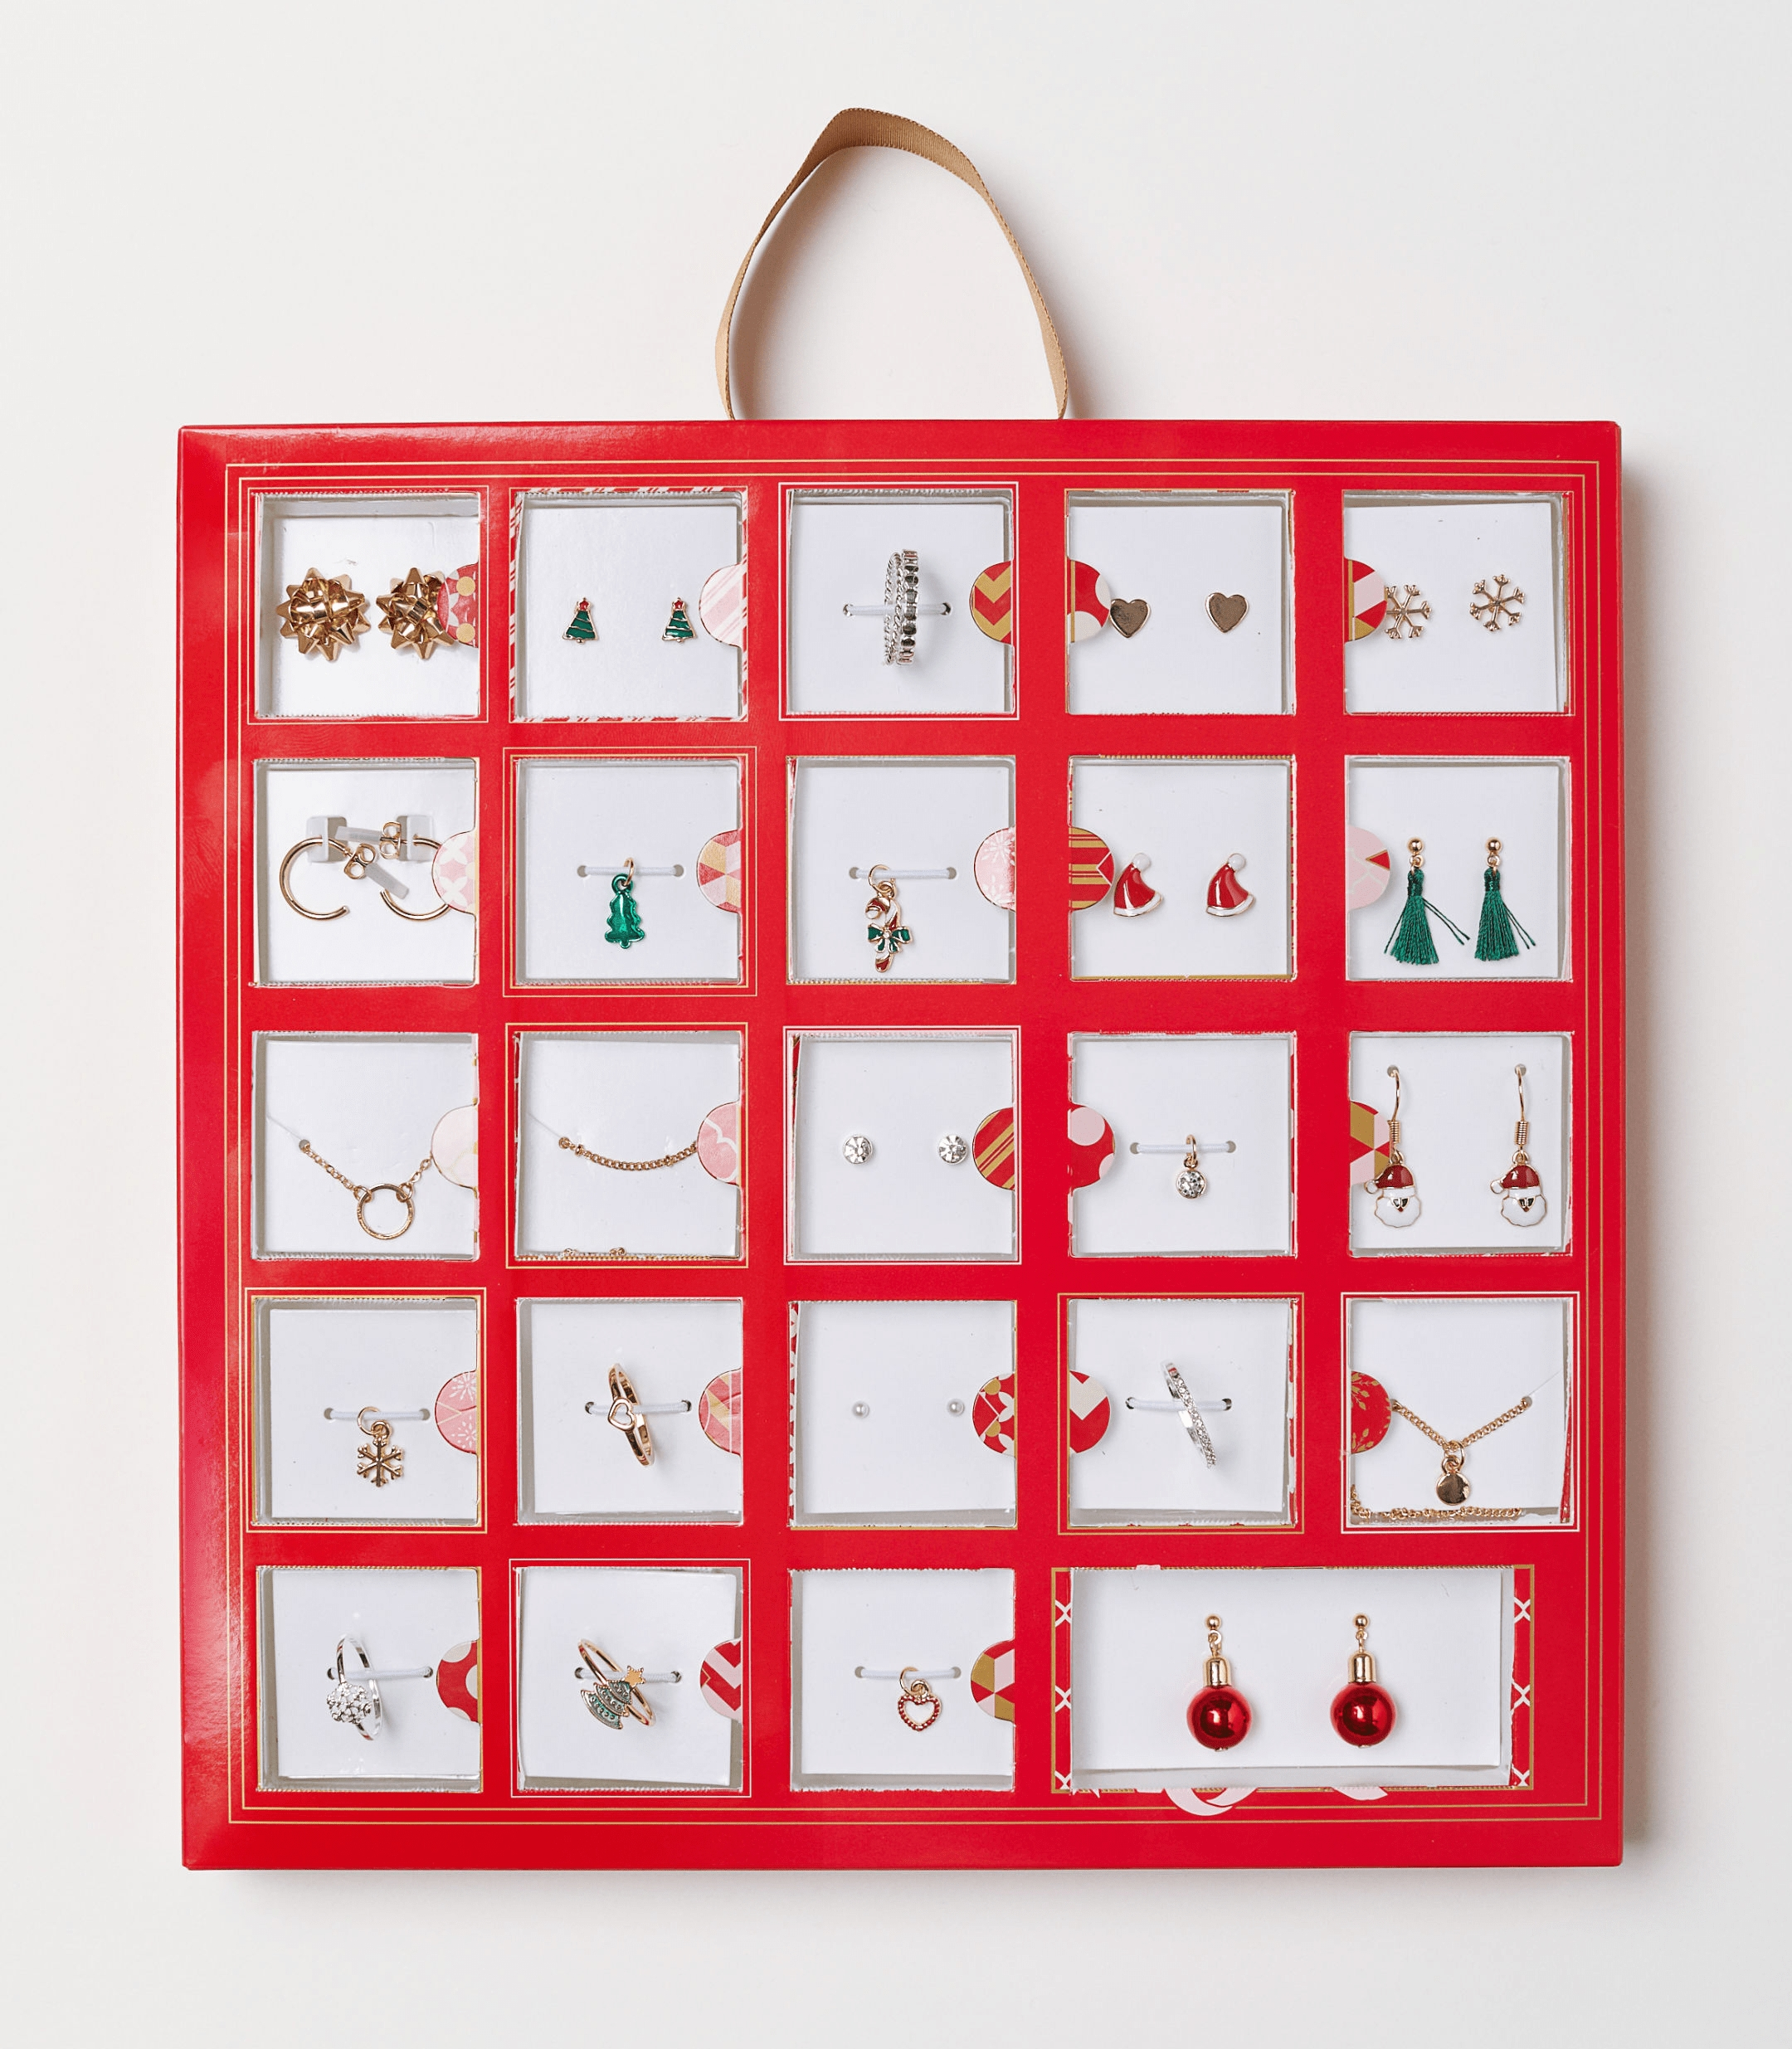 H&m 2018 Advent Calendar Available Now! - Hello Subscription H&m Advent Calendar 2019